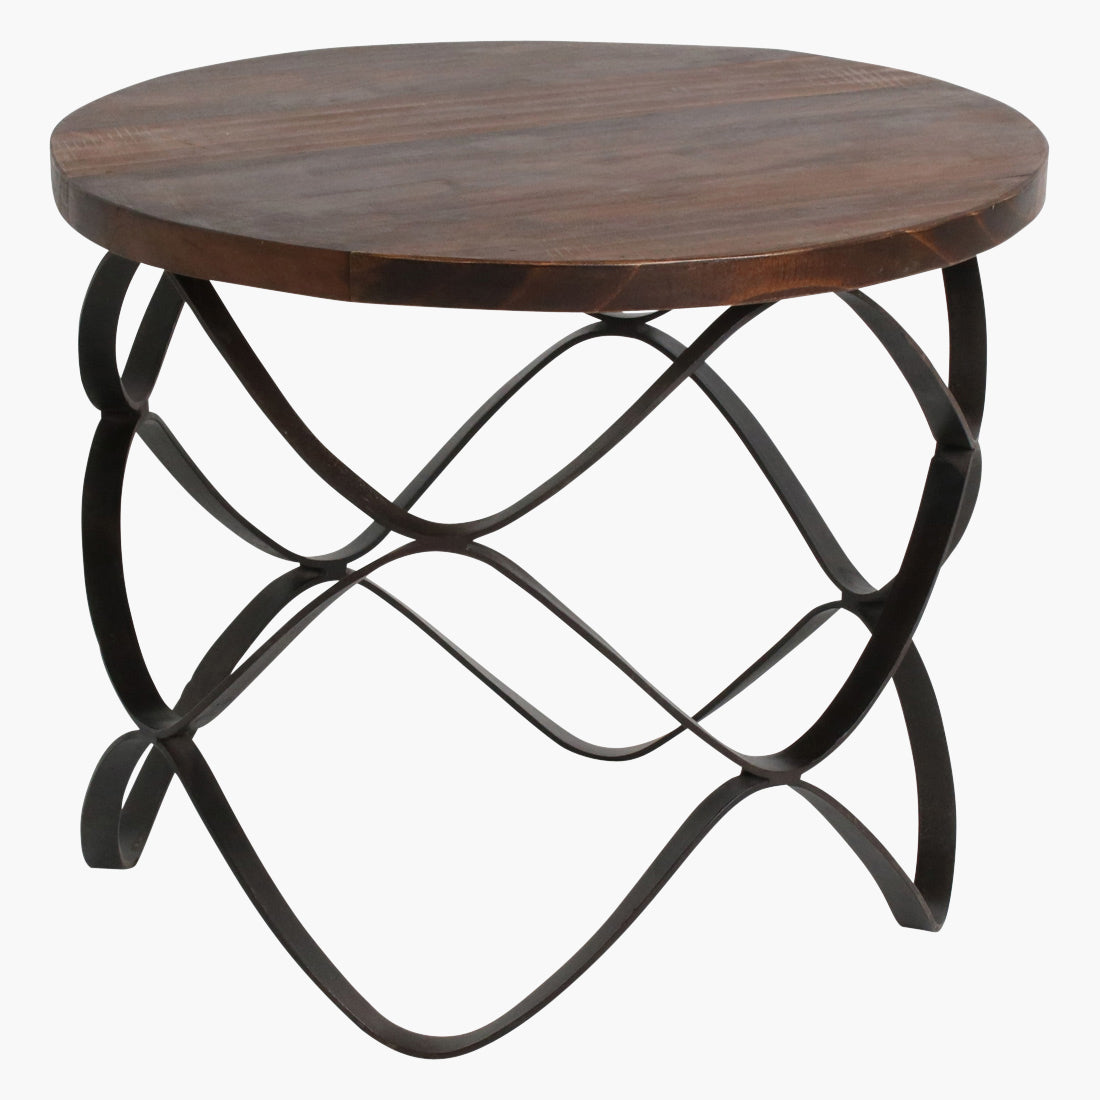 Factory wave coffeetable round